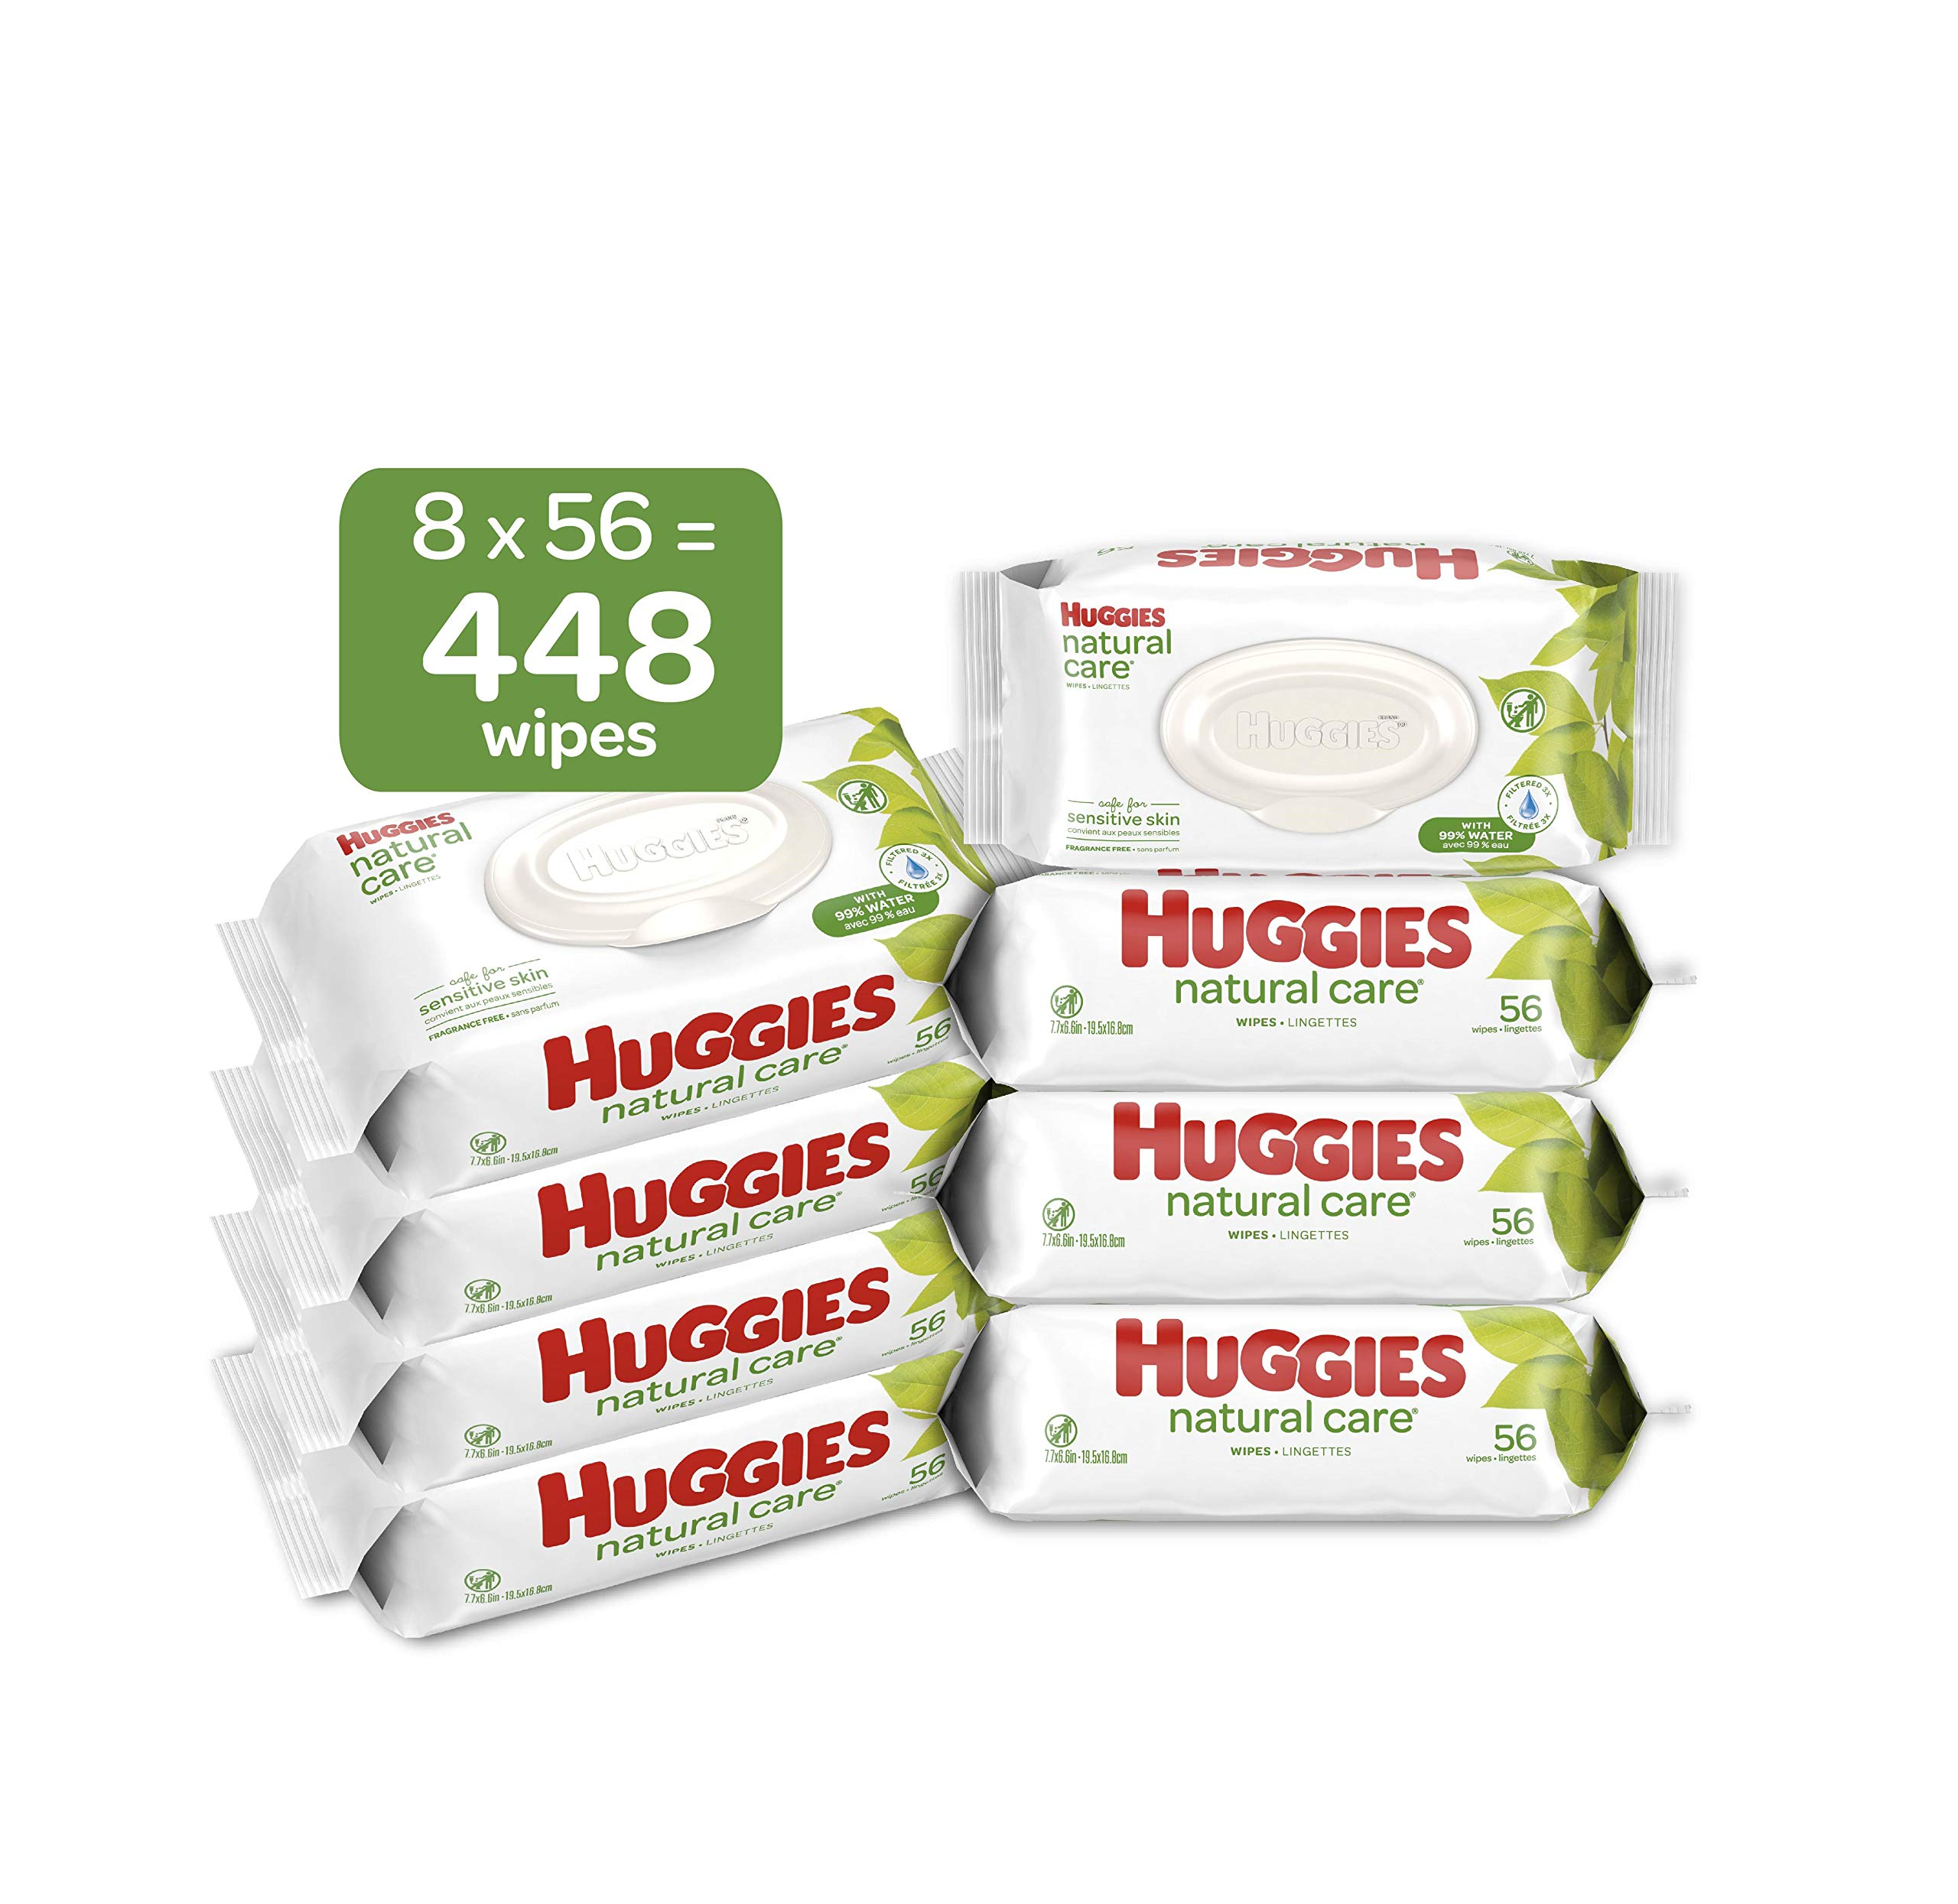 HUGGIES Natural Care Unscented Baby Wipes, Sensitive, 8 Flip-top Packs, 448 Count by HUGGIES